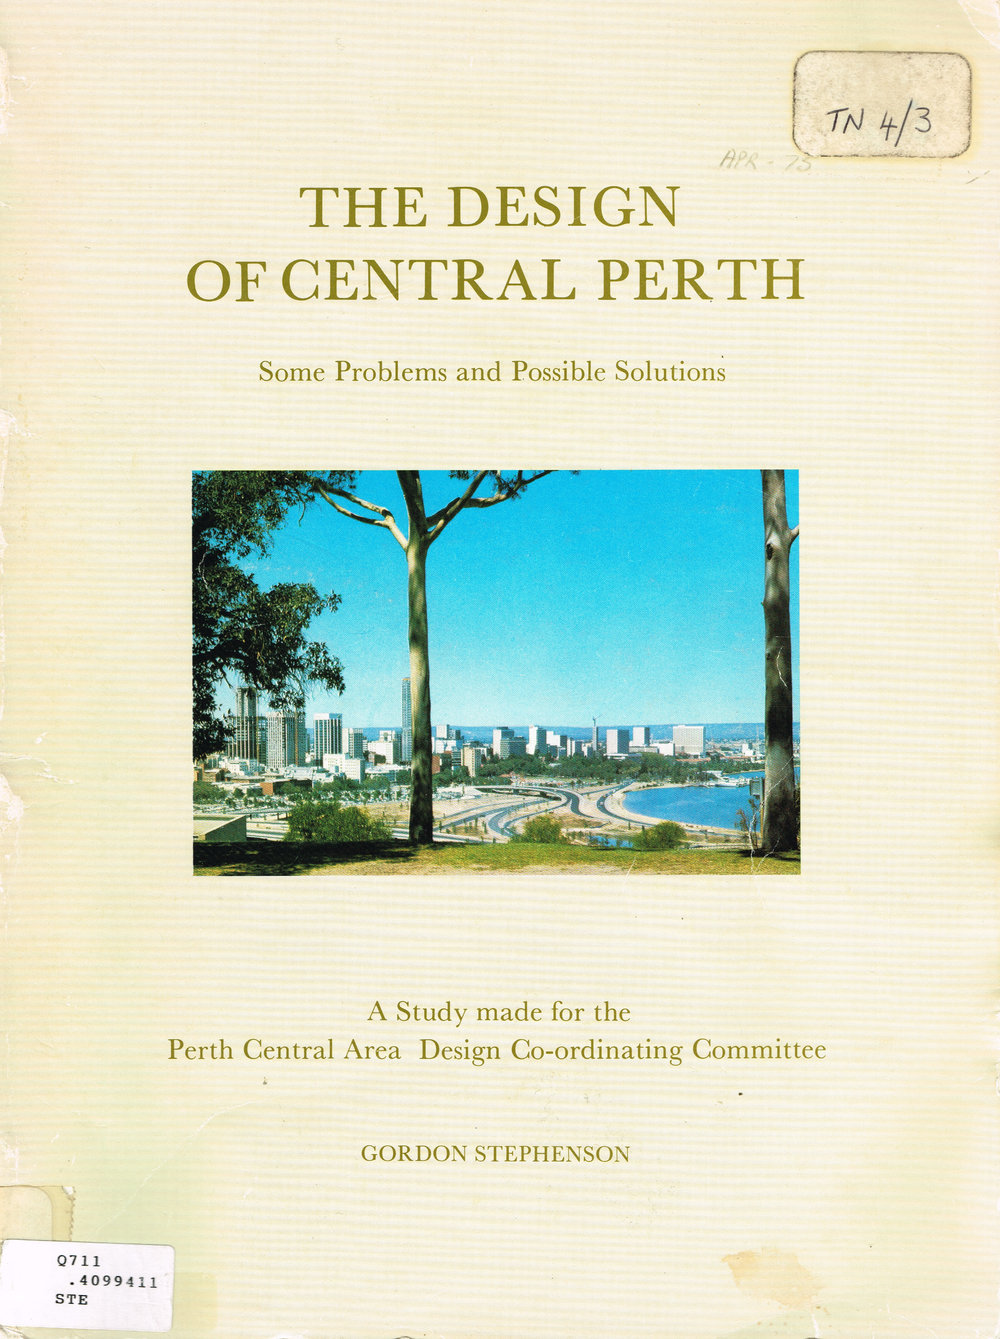 The Design of Central Perth : Some problems and possible solutions - A study made of the Perth Central Area Design Co-coordinating Committee    Gordon Stephenson